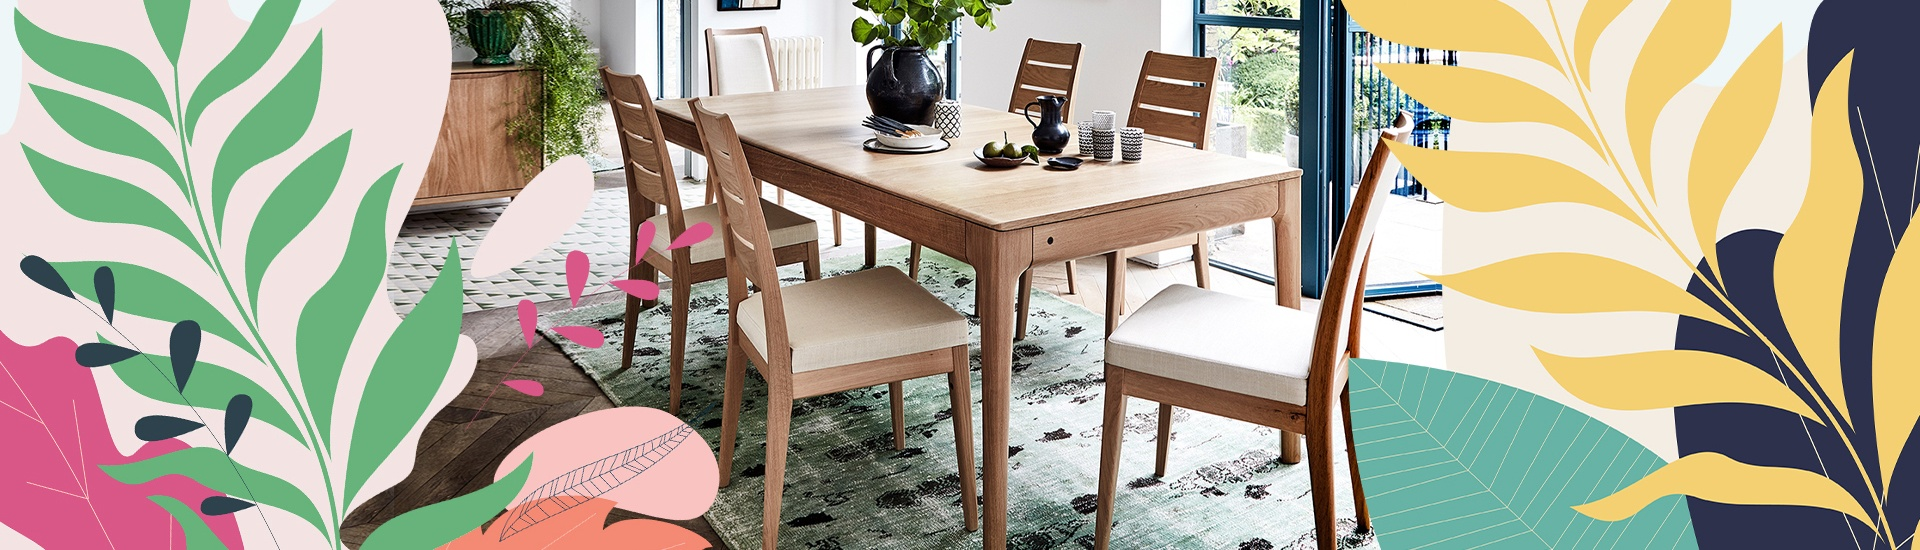 Iconic British Furniture by Ercol